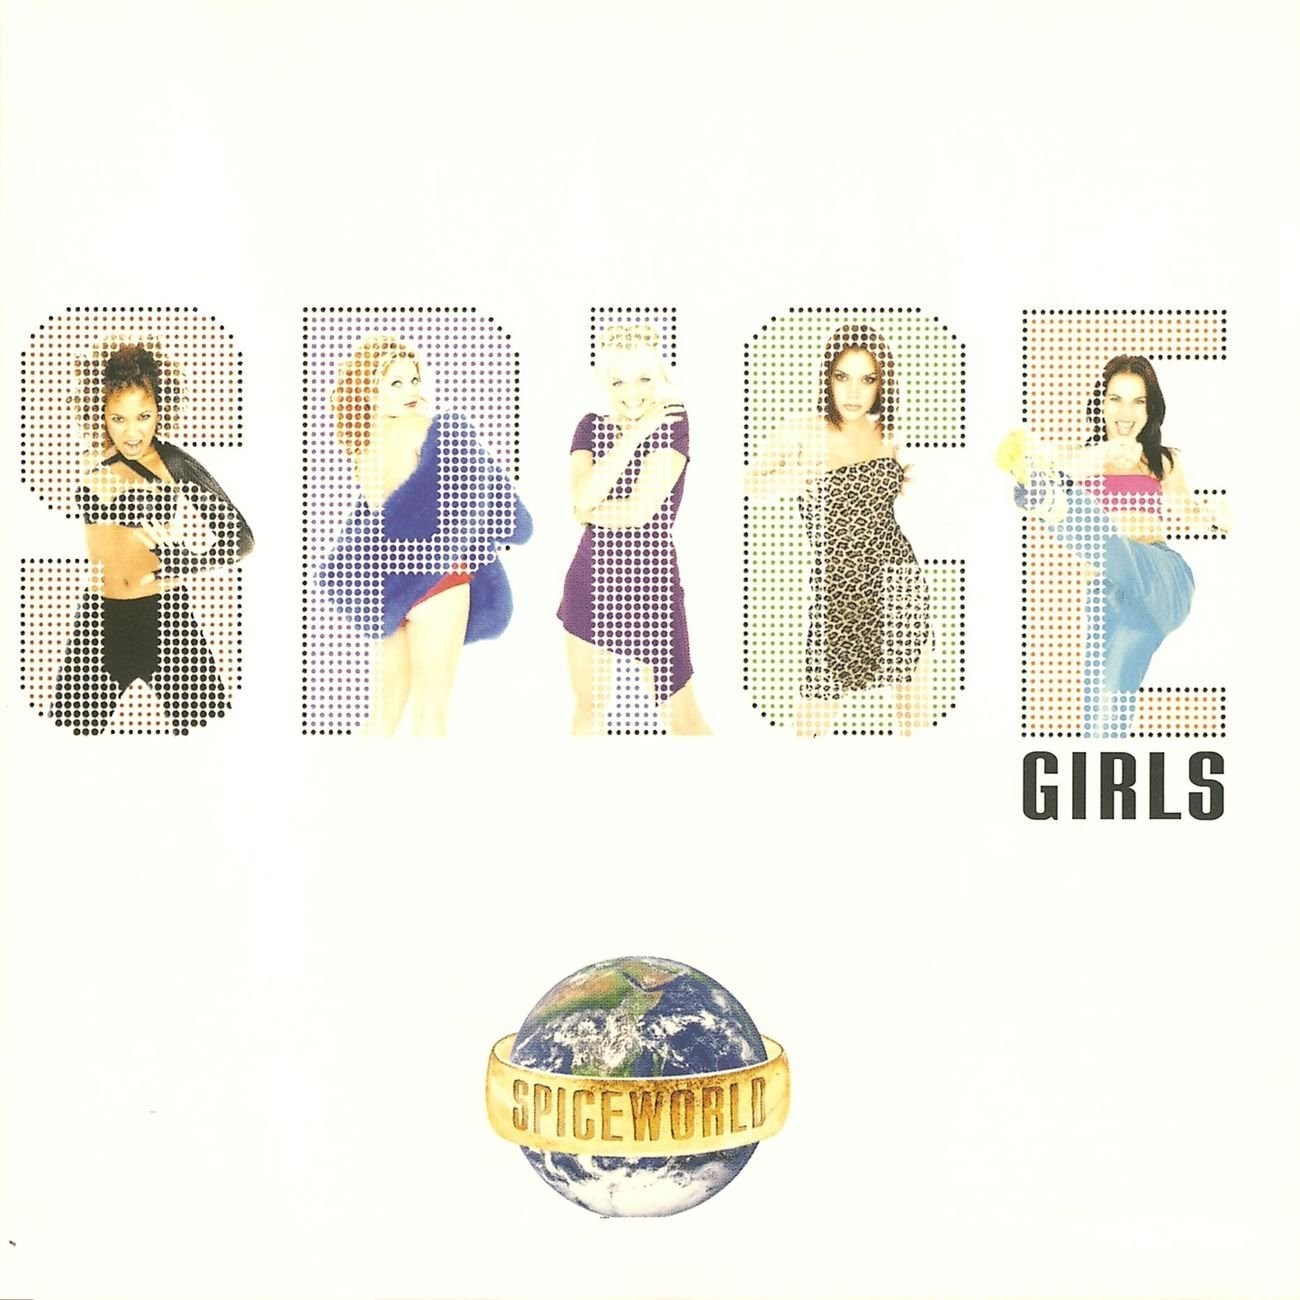 Their phenomenal sophomore effort, Spice World on compact disc. Perfect for blasting via your bedroom sound system (the one you got for Christmas that can hold FIVE CDs AT ONCE!)